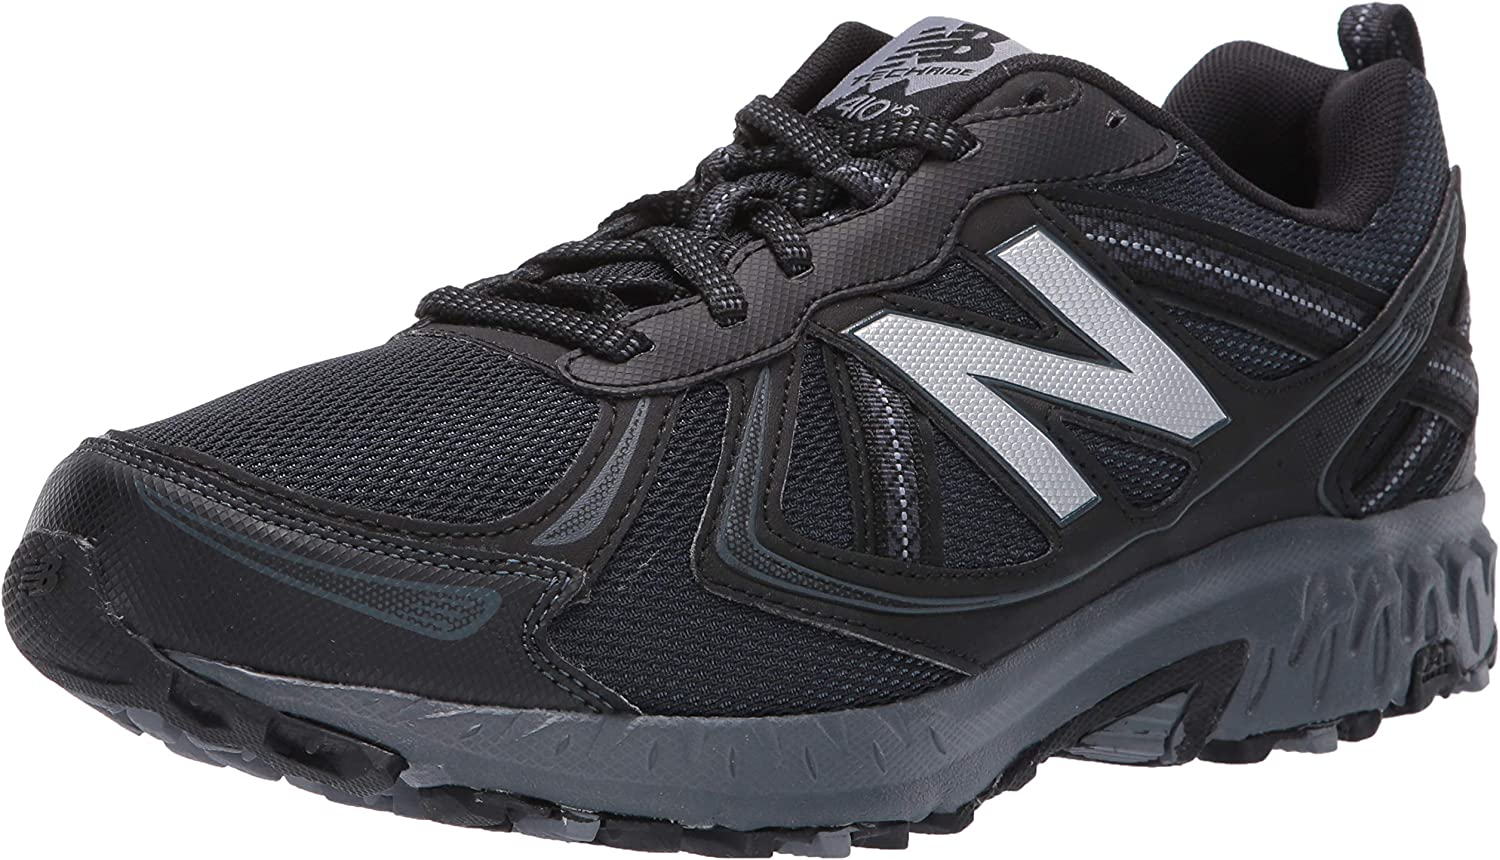 New Balance Men s MT410v5 Cushioning Trail Running Shoe Runner, Medium